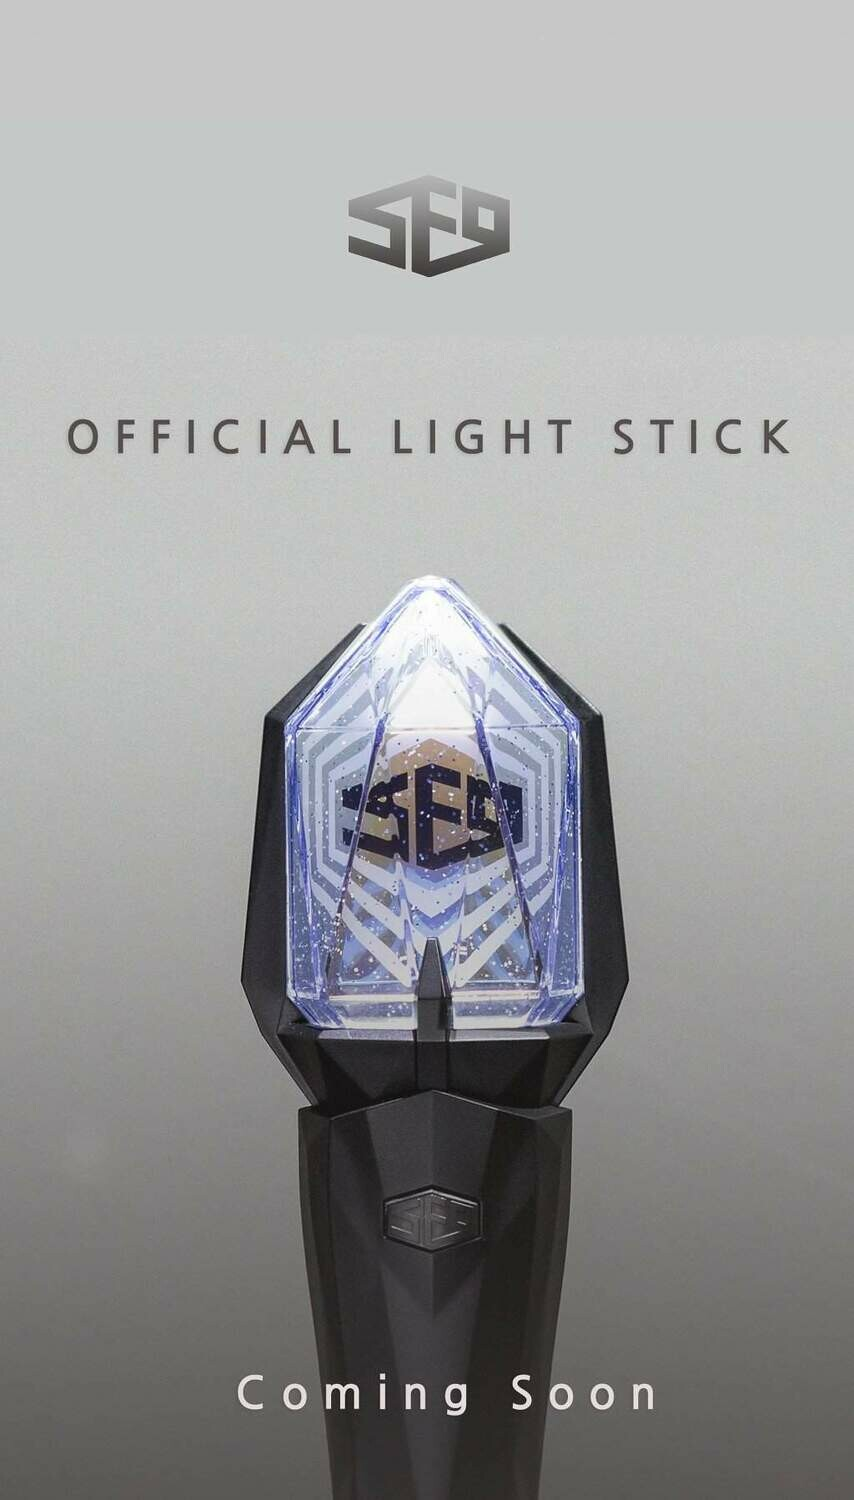 SF9 Official Light Stick